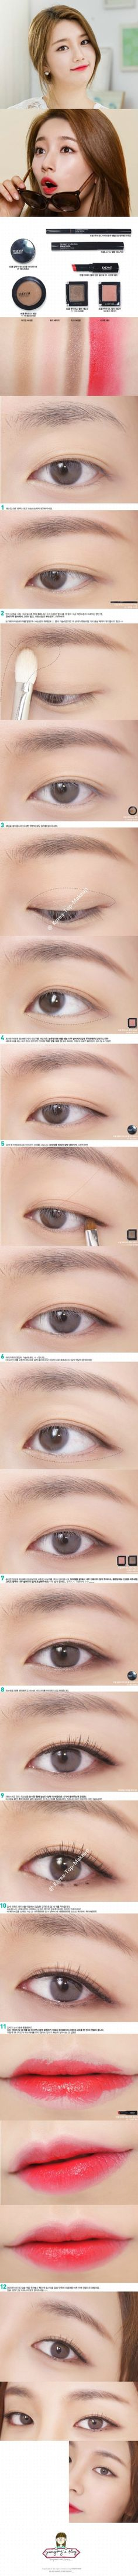 suzy eye make up